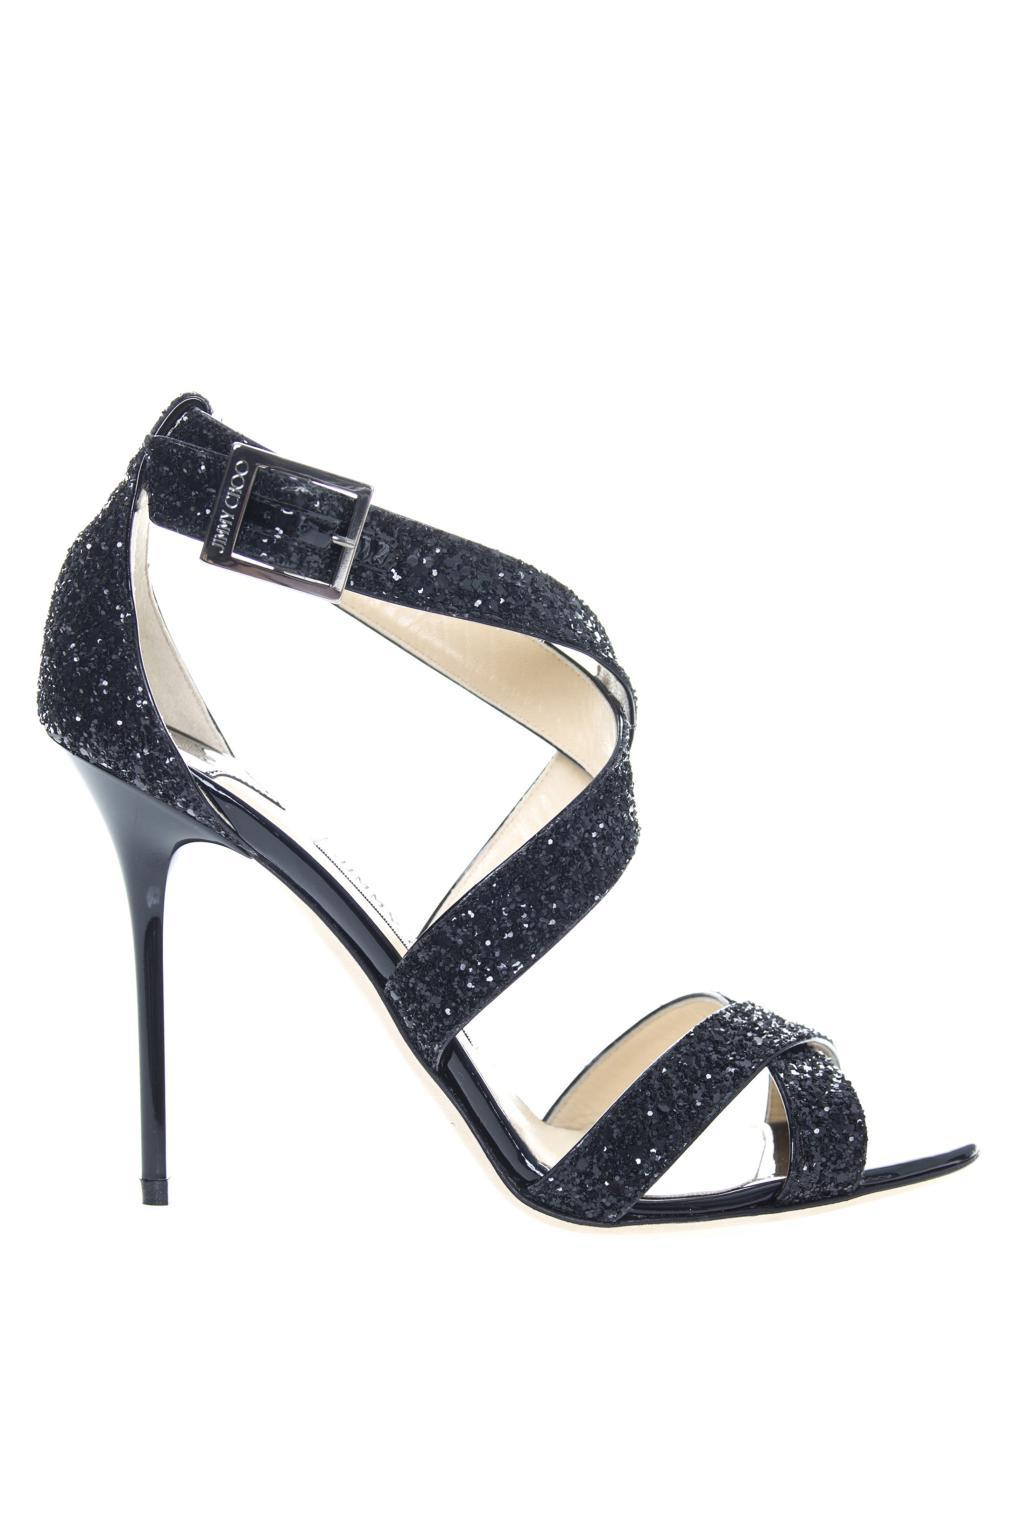 4666d2795 Jimmy Choo  lottie  High Heel Sandals in Black - Lyst